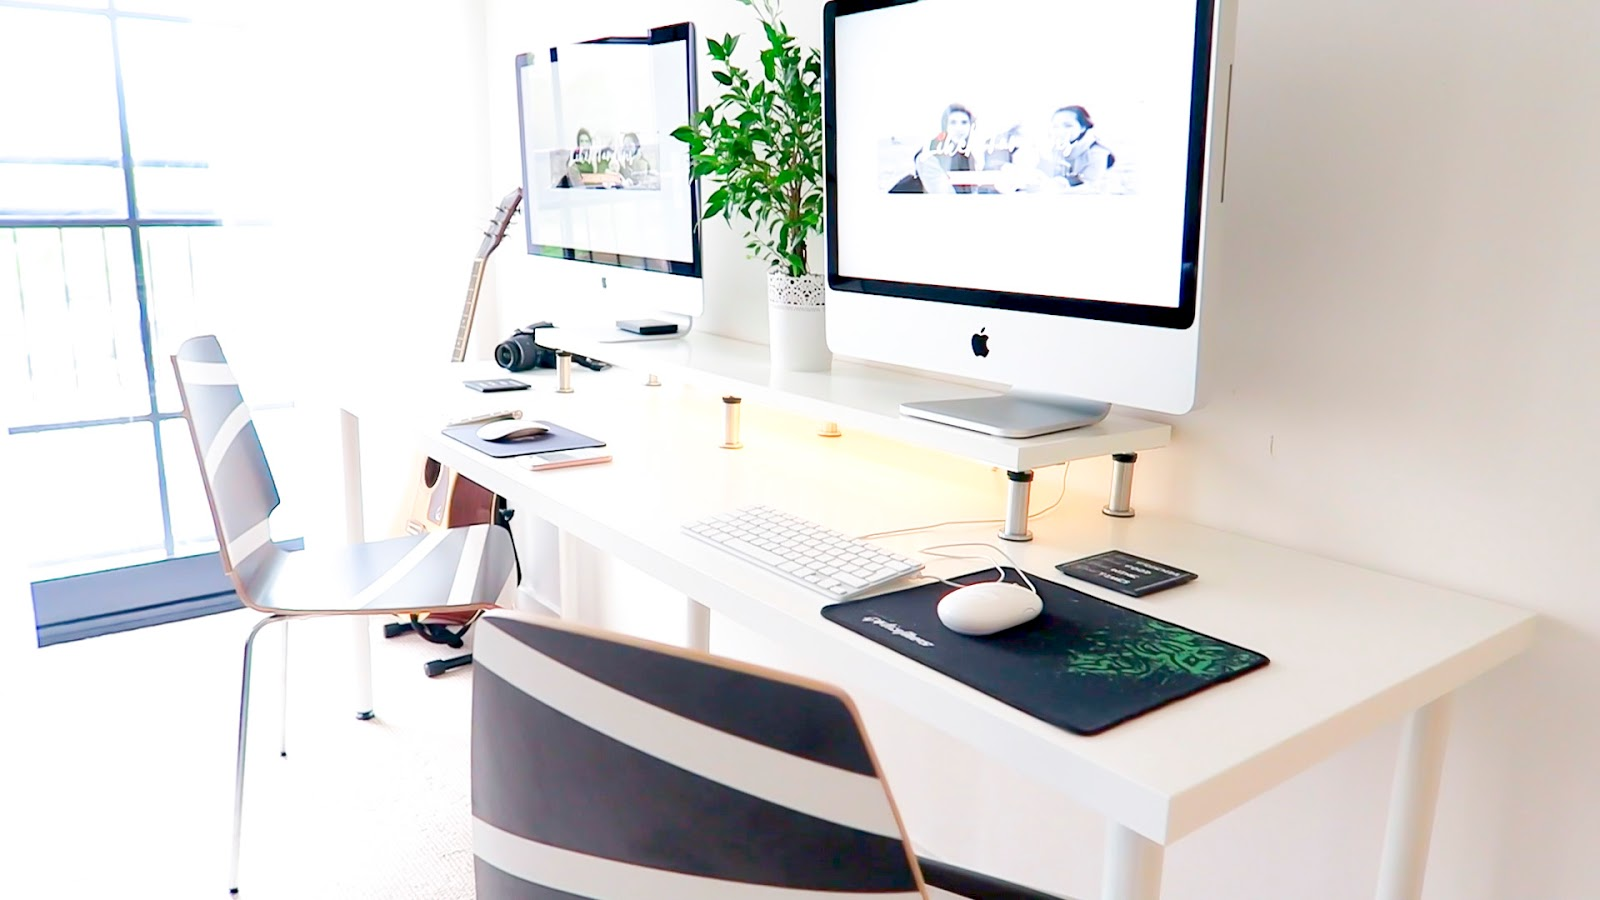 I Set About Researching Online And Ended Up Watching Numerous Desk Builds People Had Uploaded On You After An Hour Or So Surfing The Ikea Website